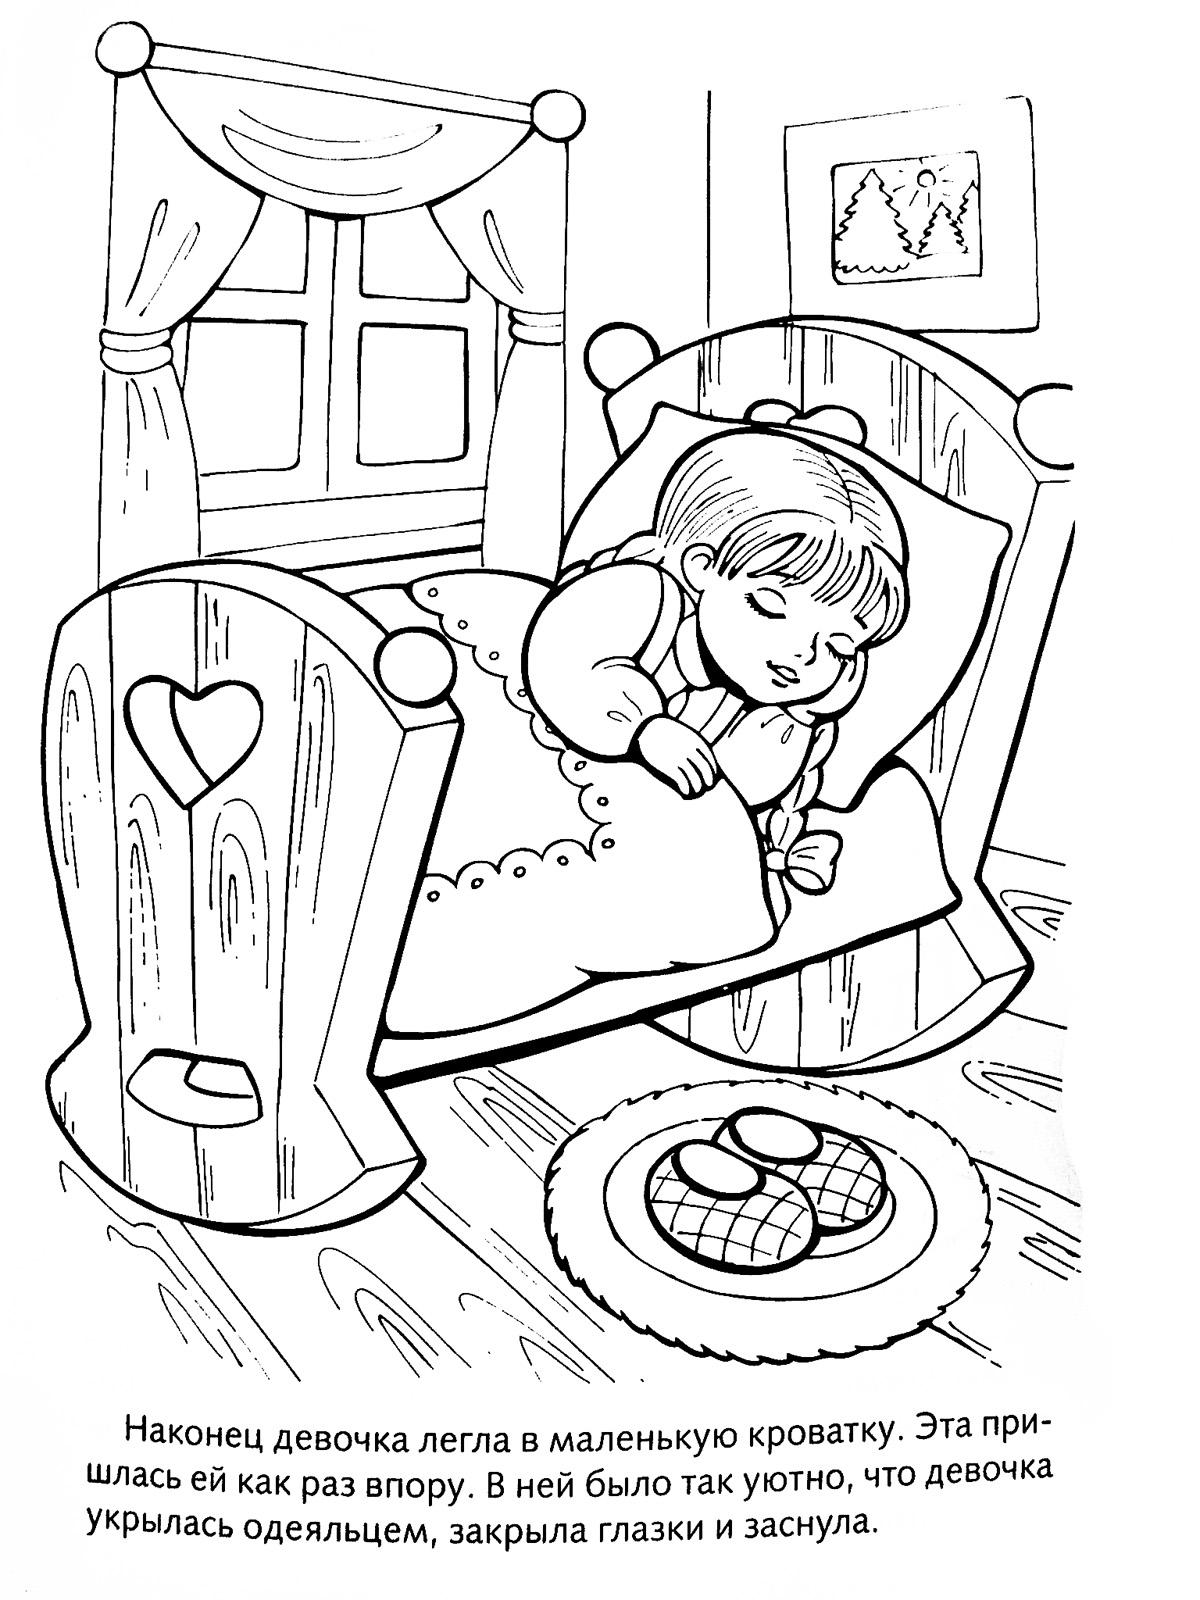 Coloring coloring pages to the tale of three bears girl sleeping on a bed bear, download free coloring pages pages